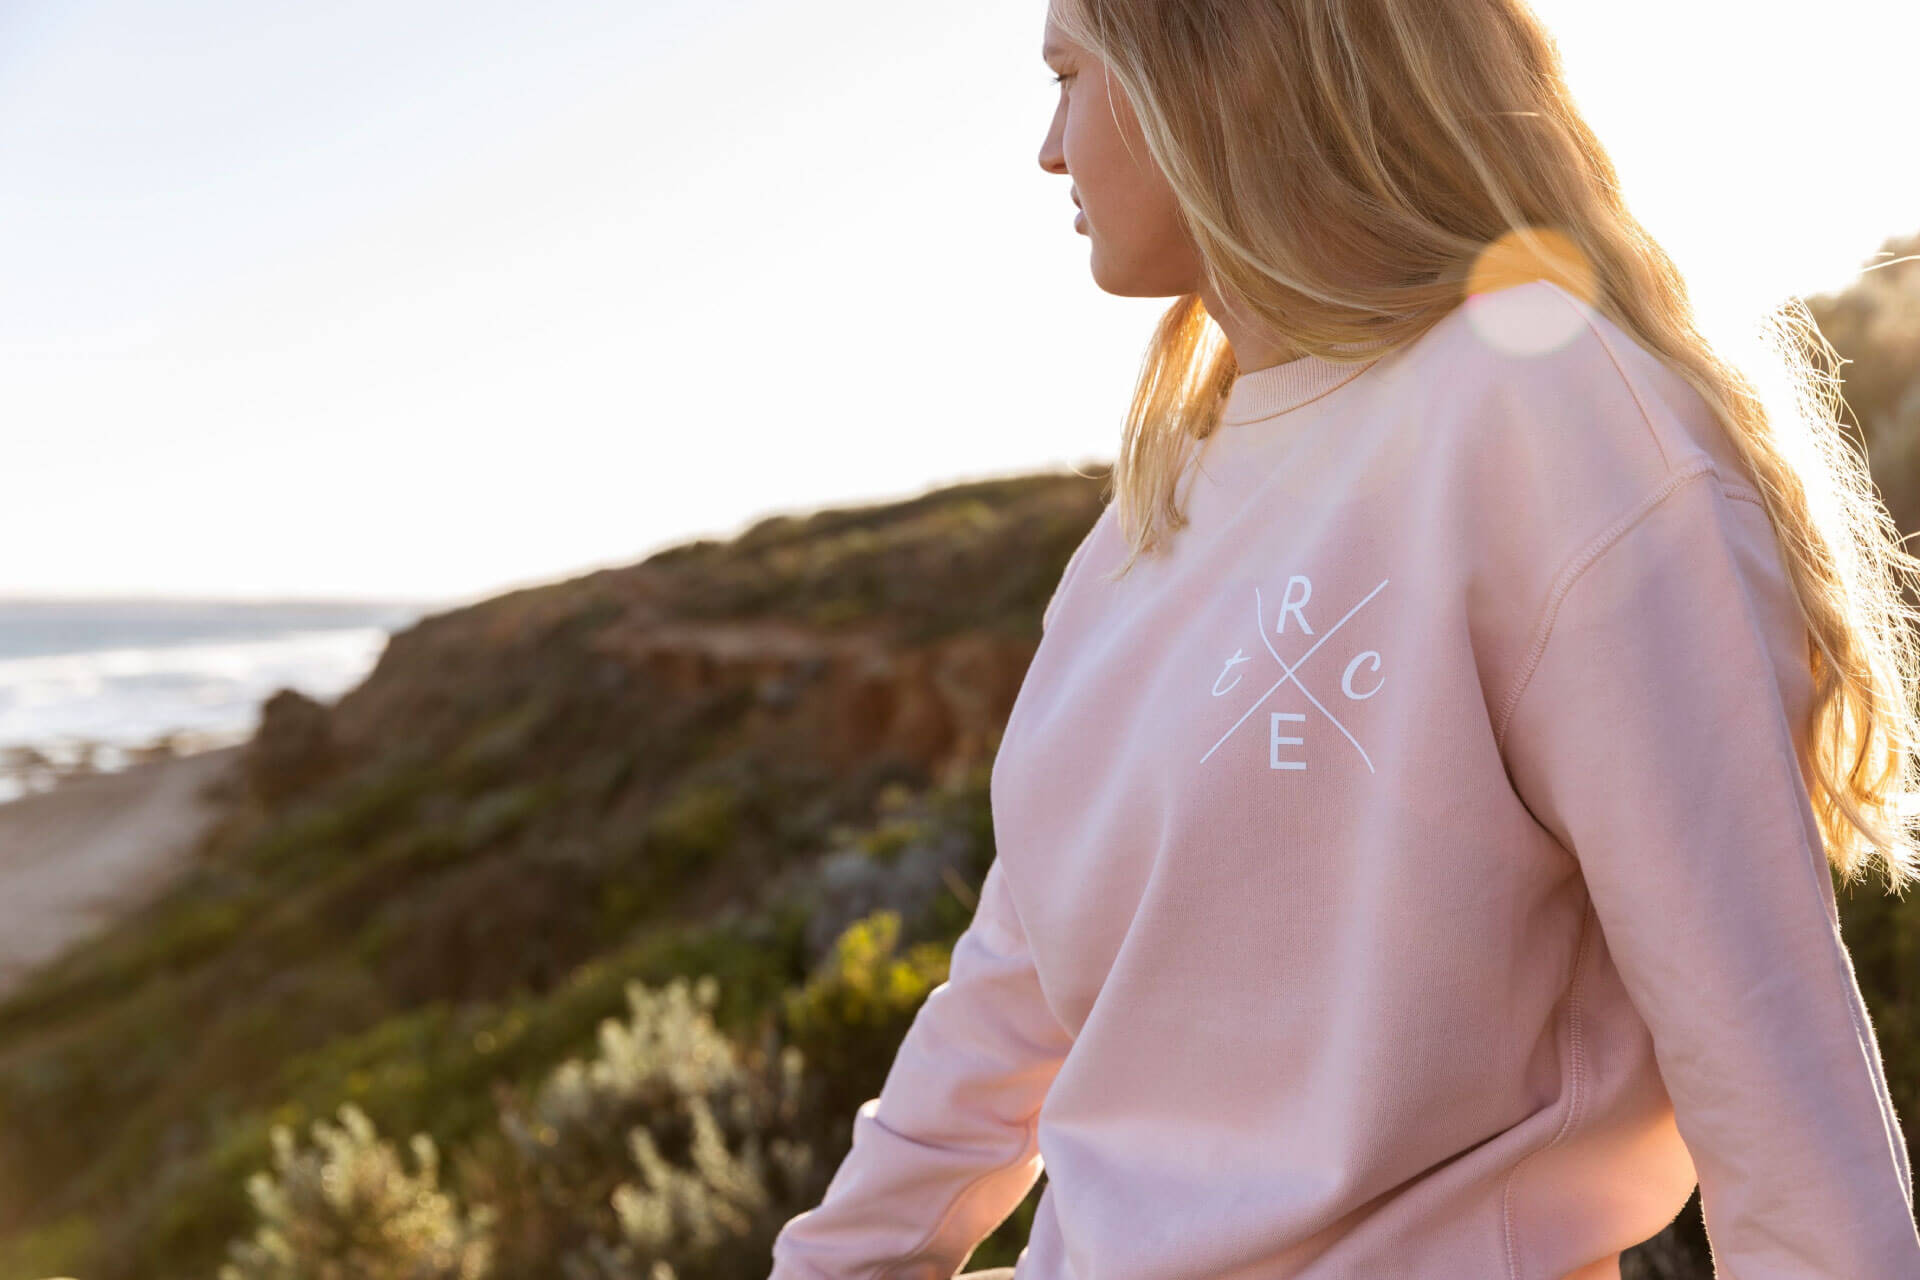 RIPPLE EFFECT the change-womens pink hoody all funds to ocean conservation